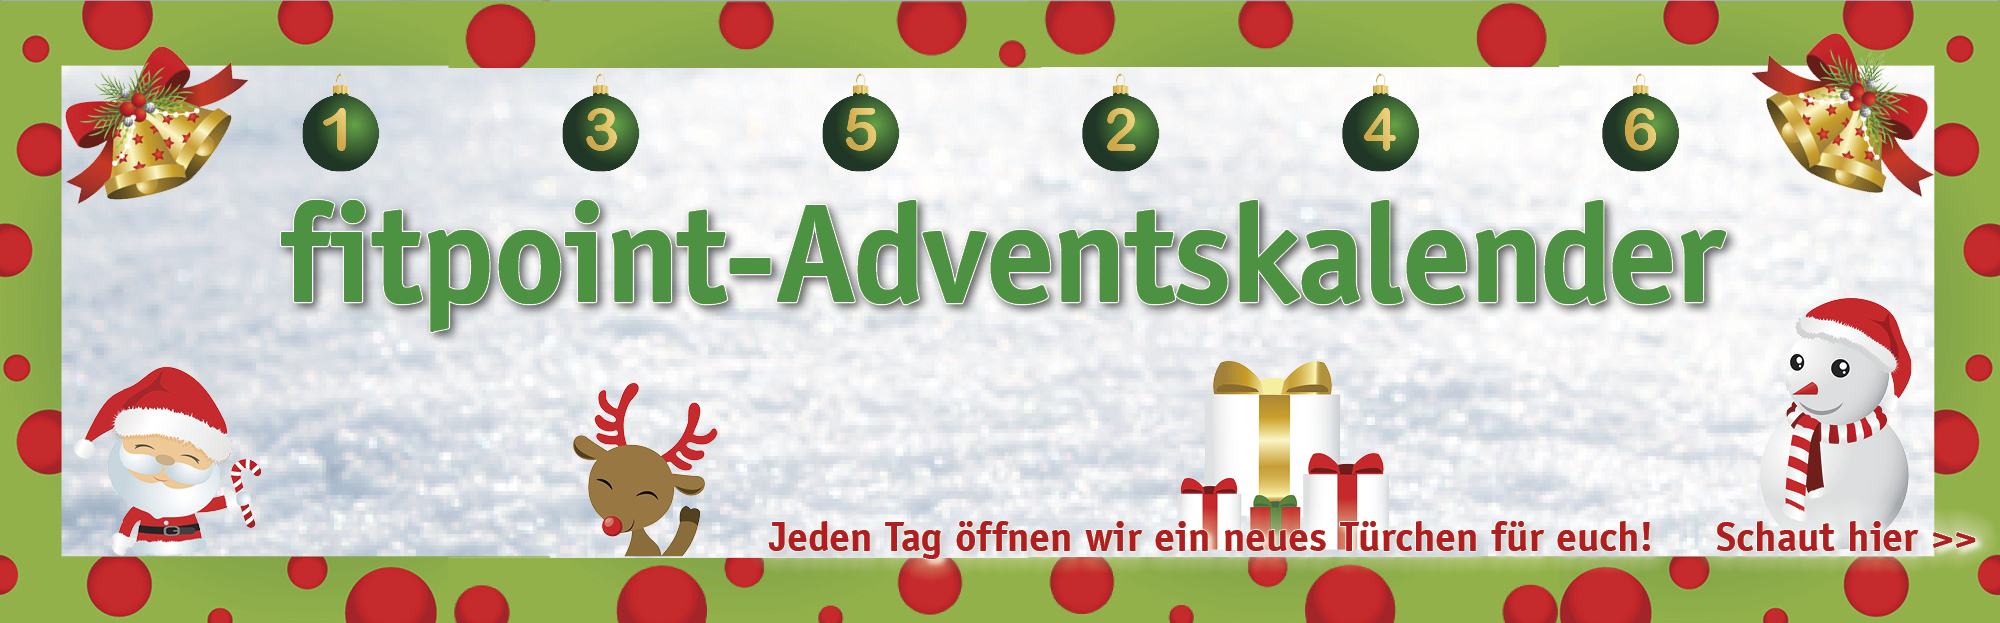 Adventskalender 2018 Background